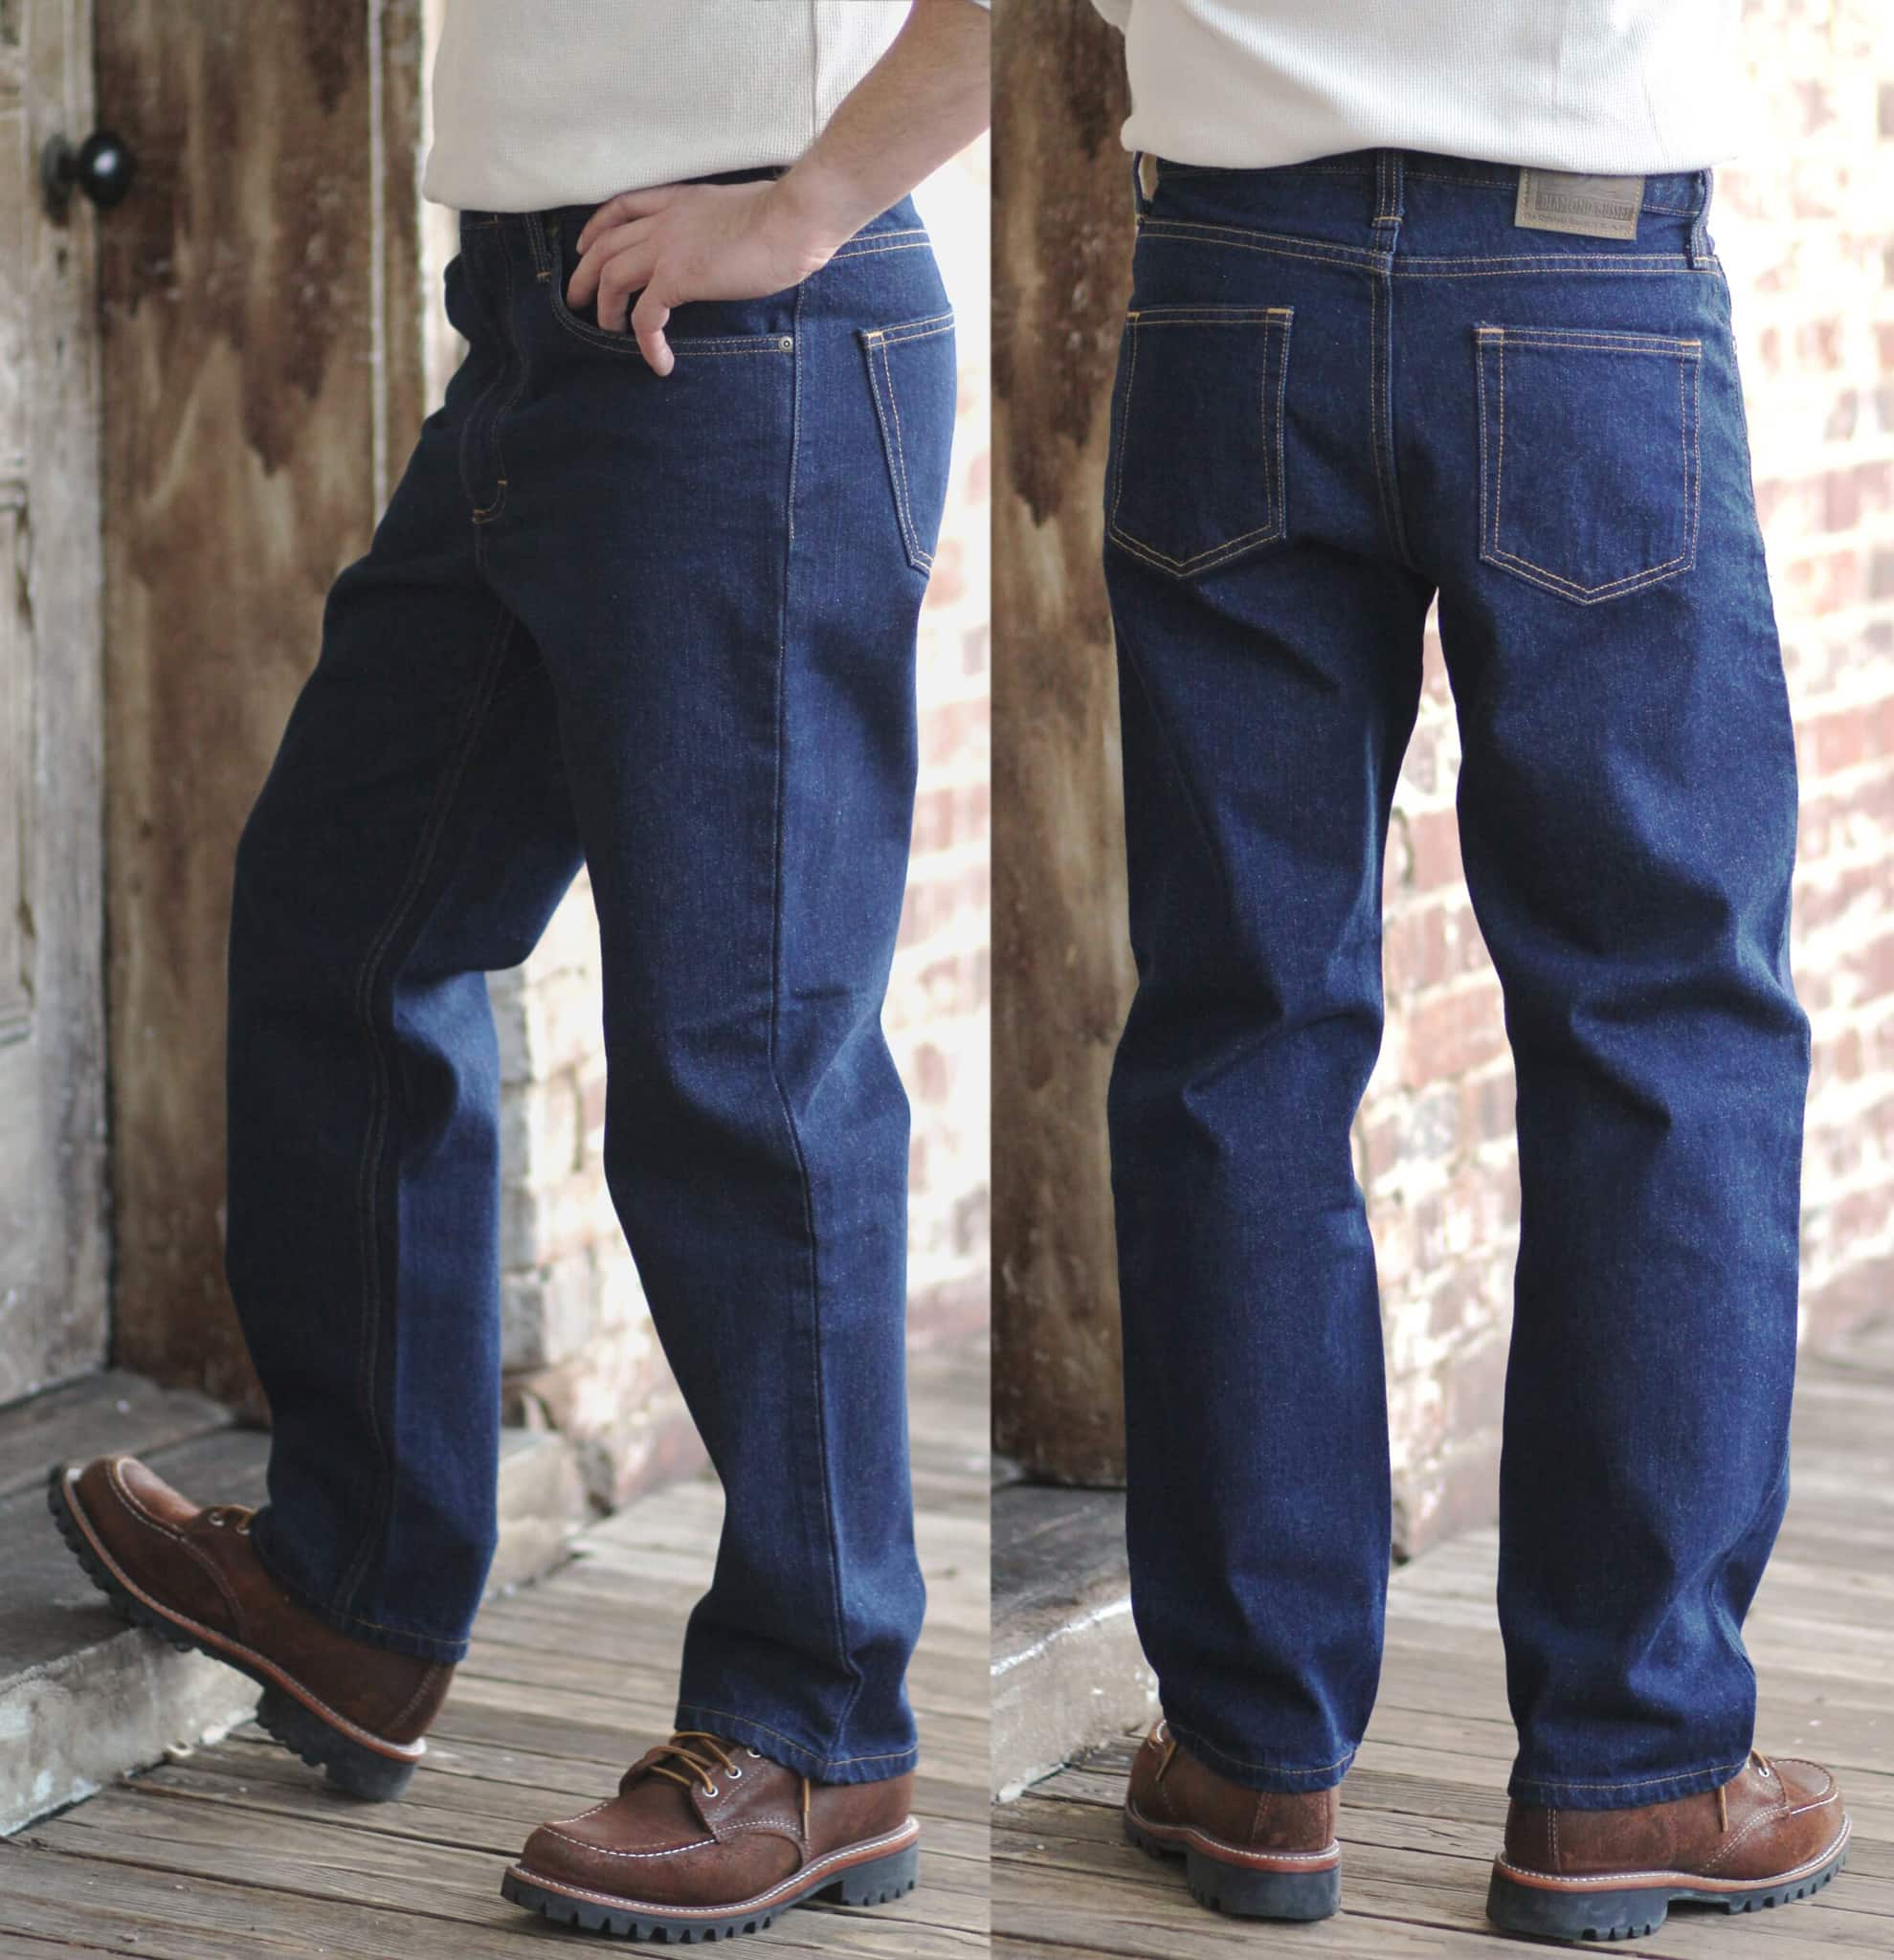 A $67.95-classic five-pocket jean incorporated with The Diamond Gusset's signature gusset design sewn into the stride for exceptional comfort